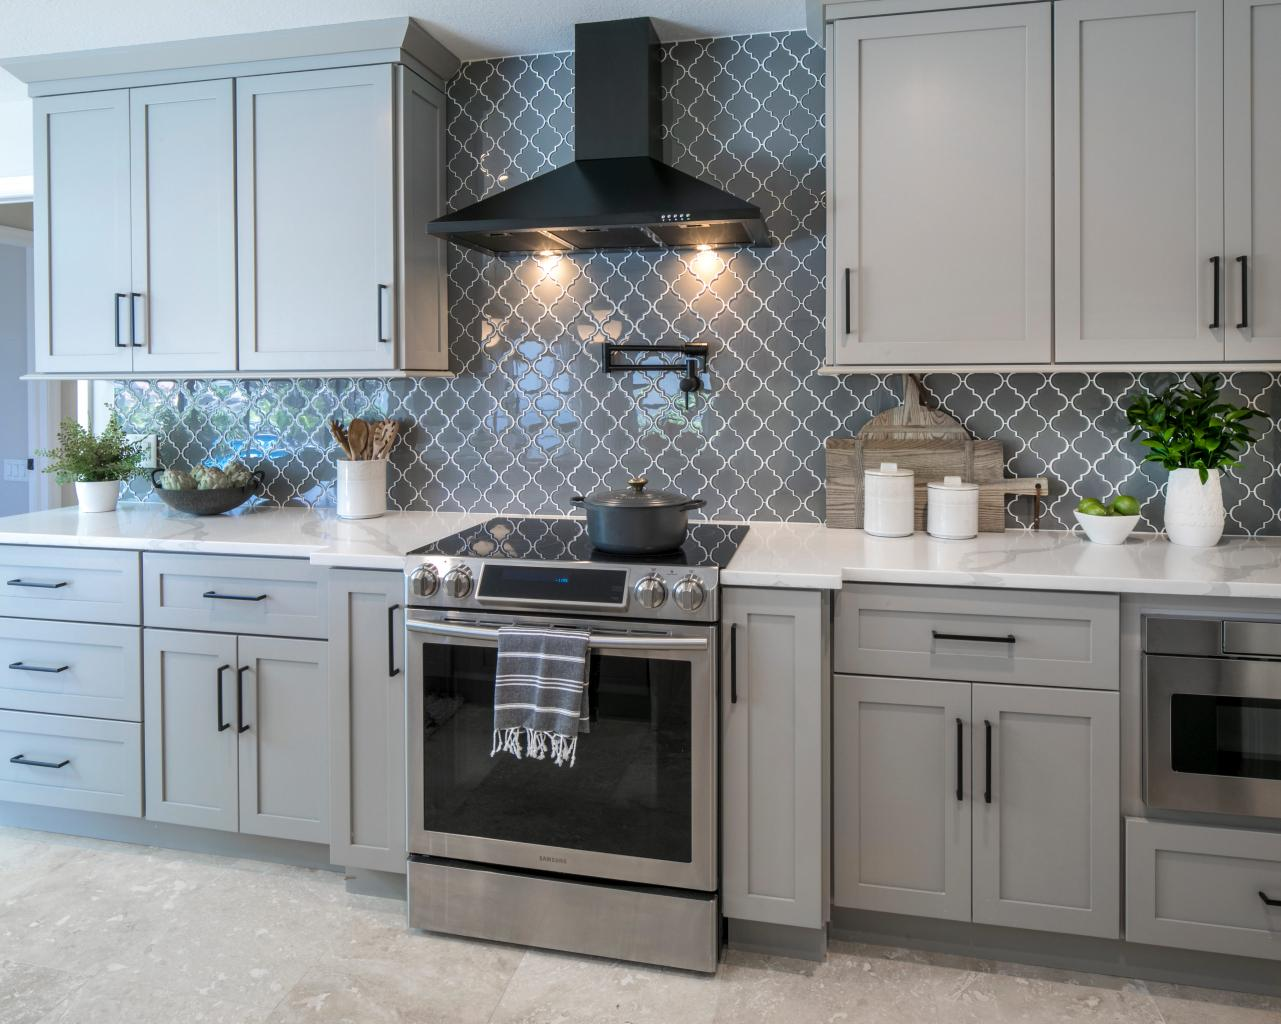 - Gray Kitchen With Decorative Counter-To-Ceiling Backsplash HGTV